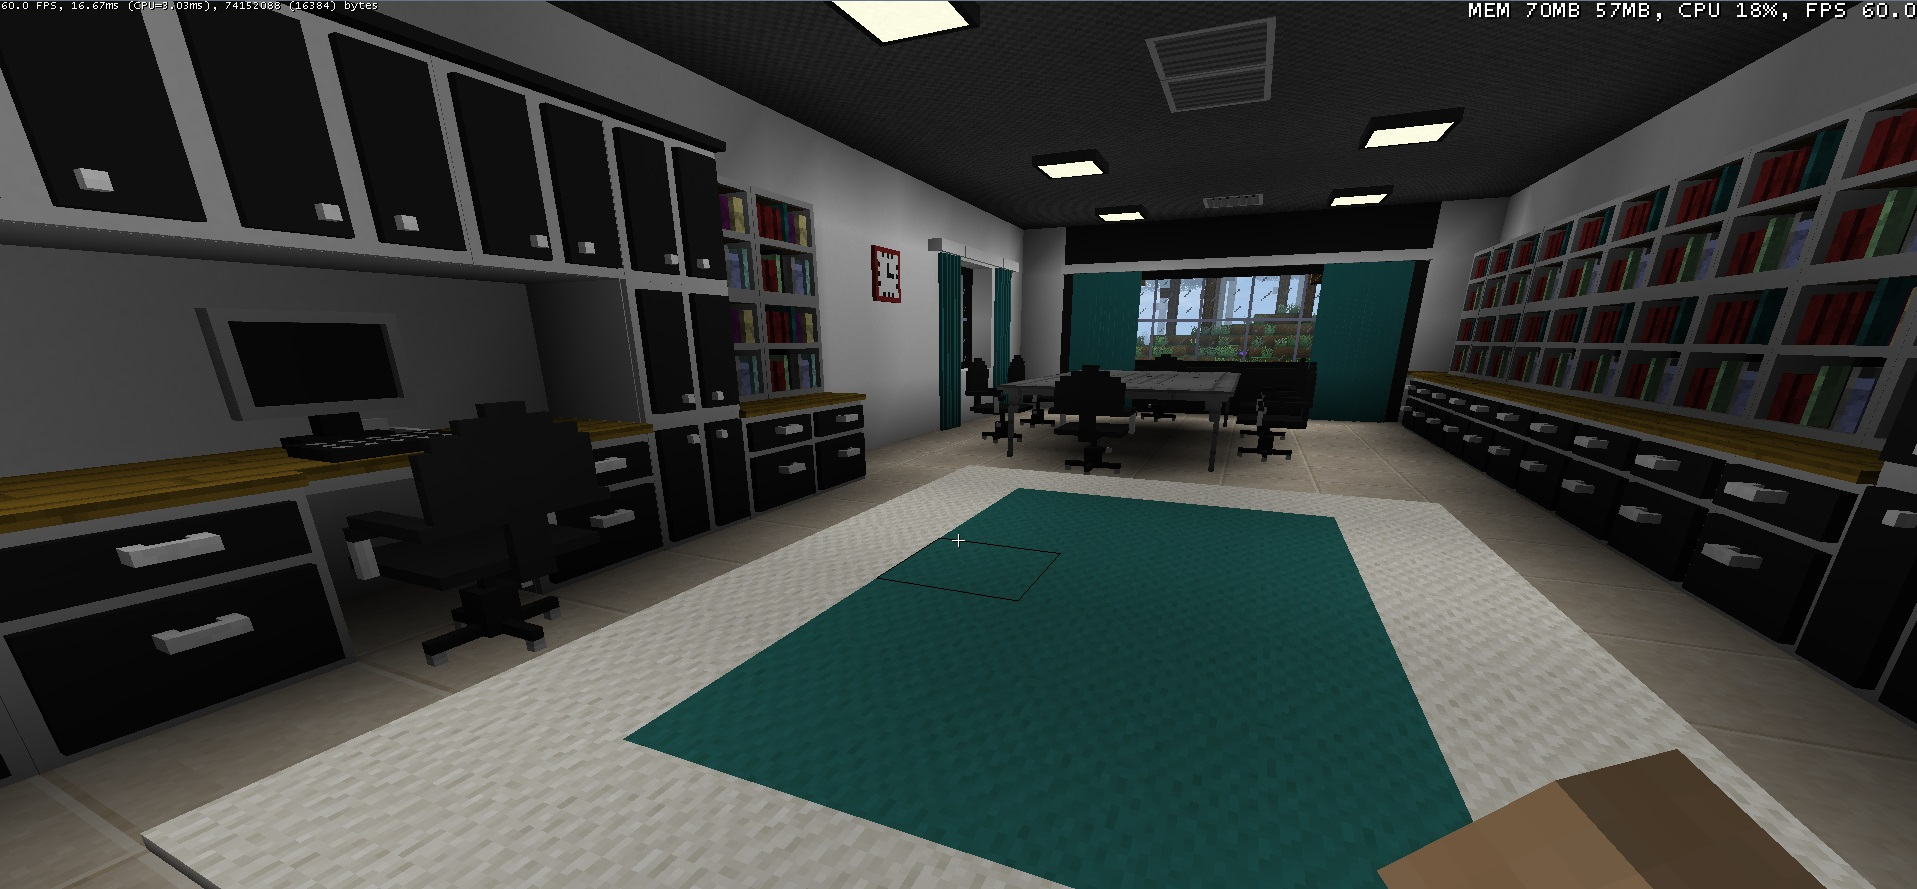 If you have good ideas on how to further improve furniture in the following updates please let me know in comments i am after realistic and workable